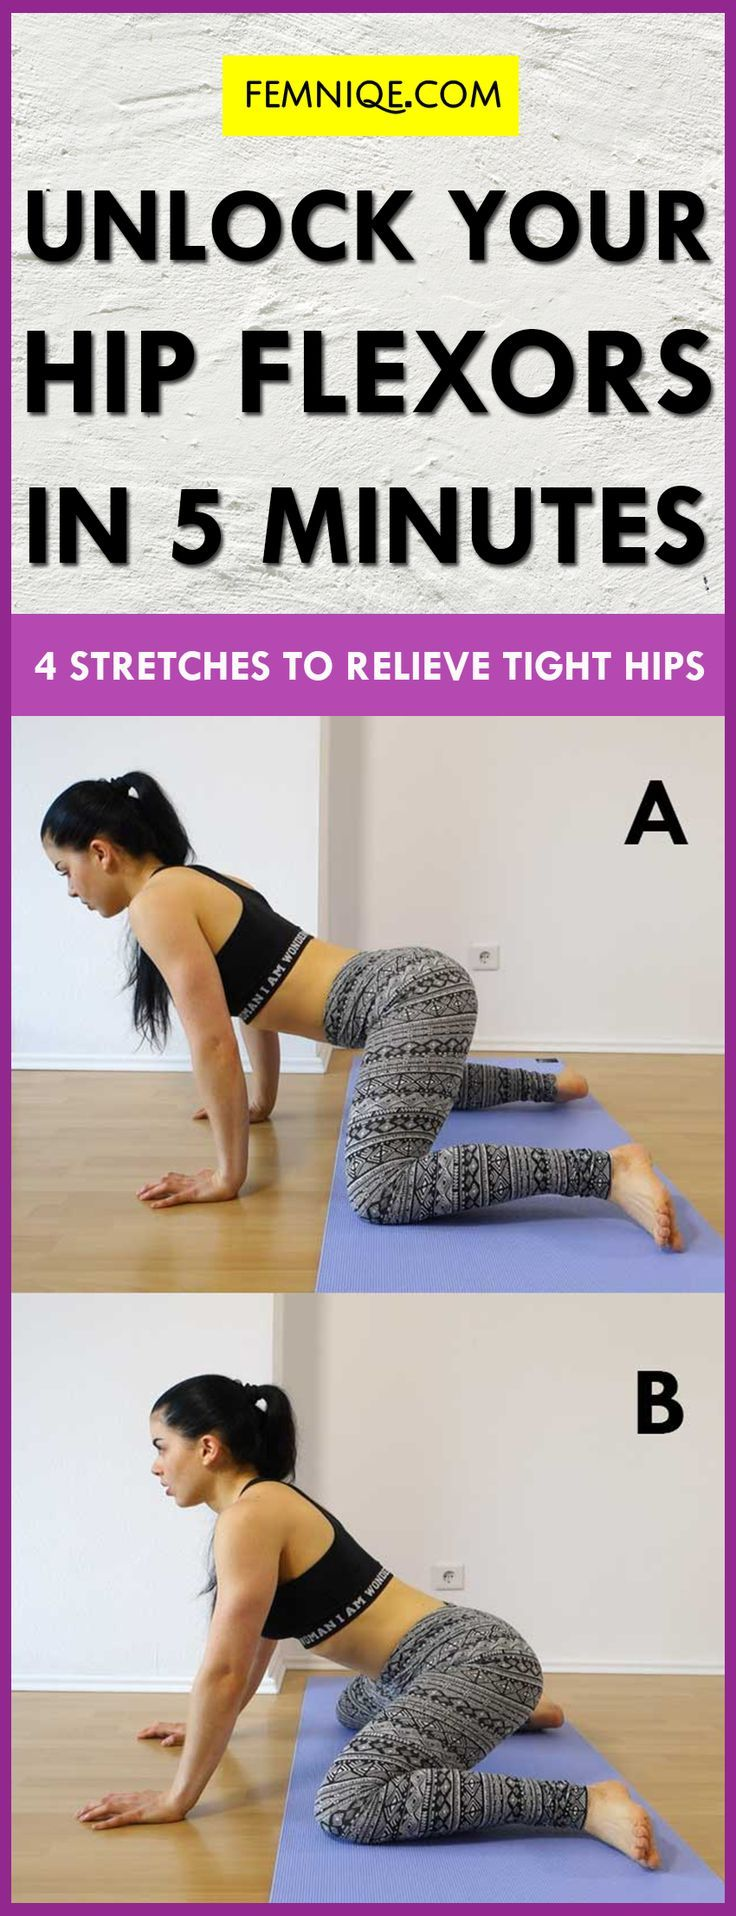 Hip Flexor Stretches: 5 Minutes to Relieve & Unlock Tight Hips (Best Guide) - Want to know how to stretch hip flexors the right way? this guide will show you step by step. Say no to tight hips! :)